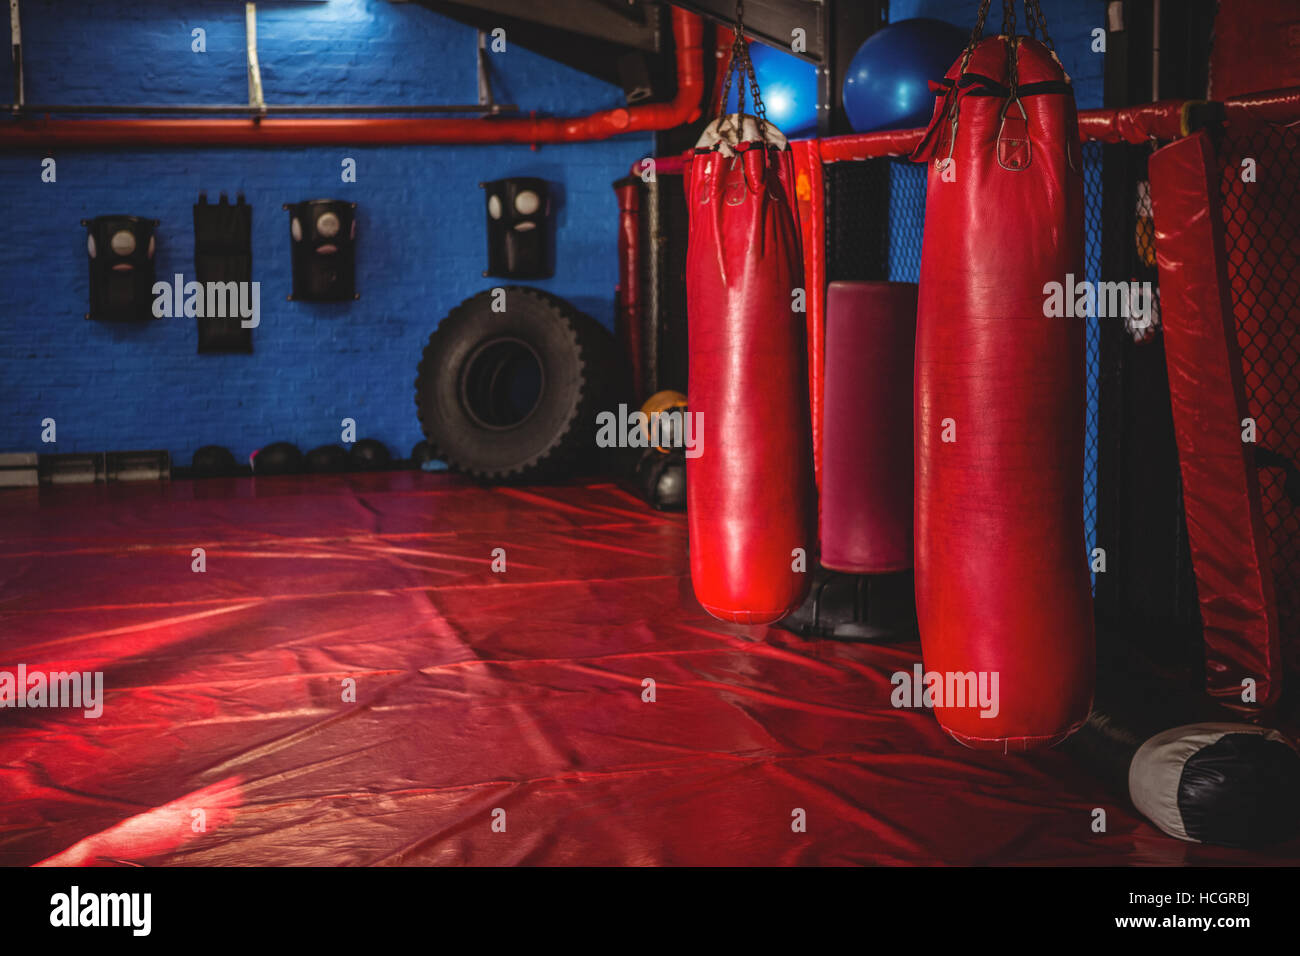 Punching bags in fitness studio - Stock Image